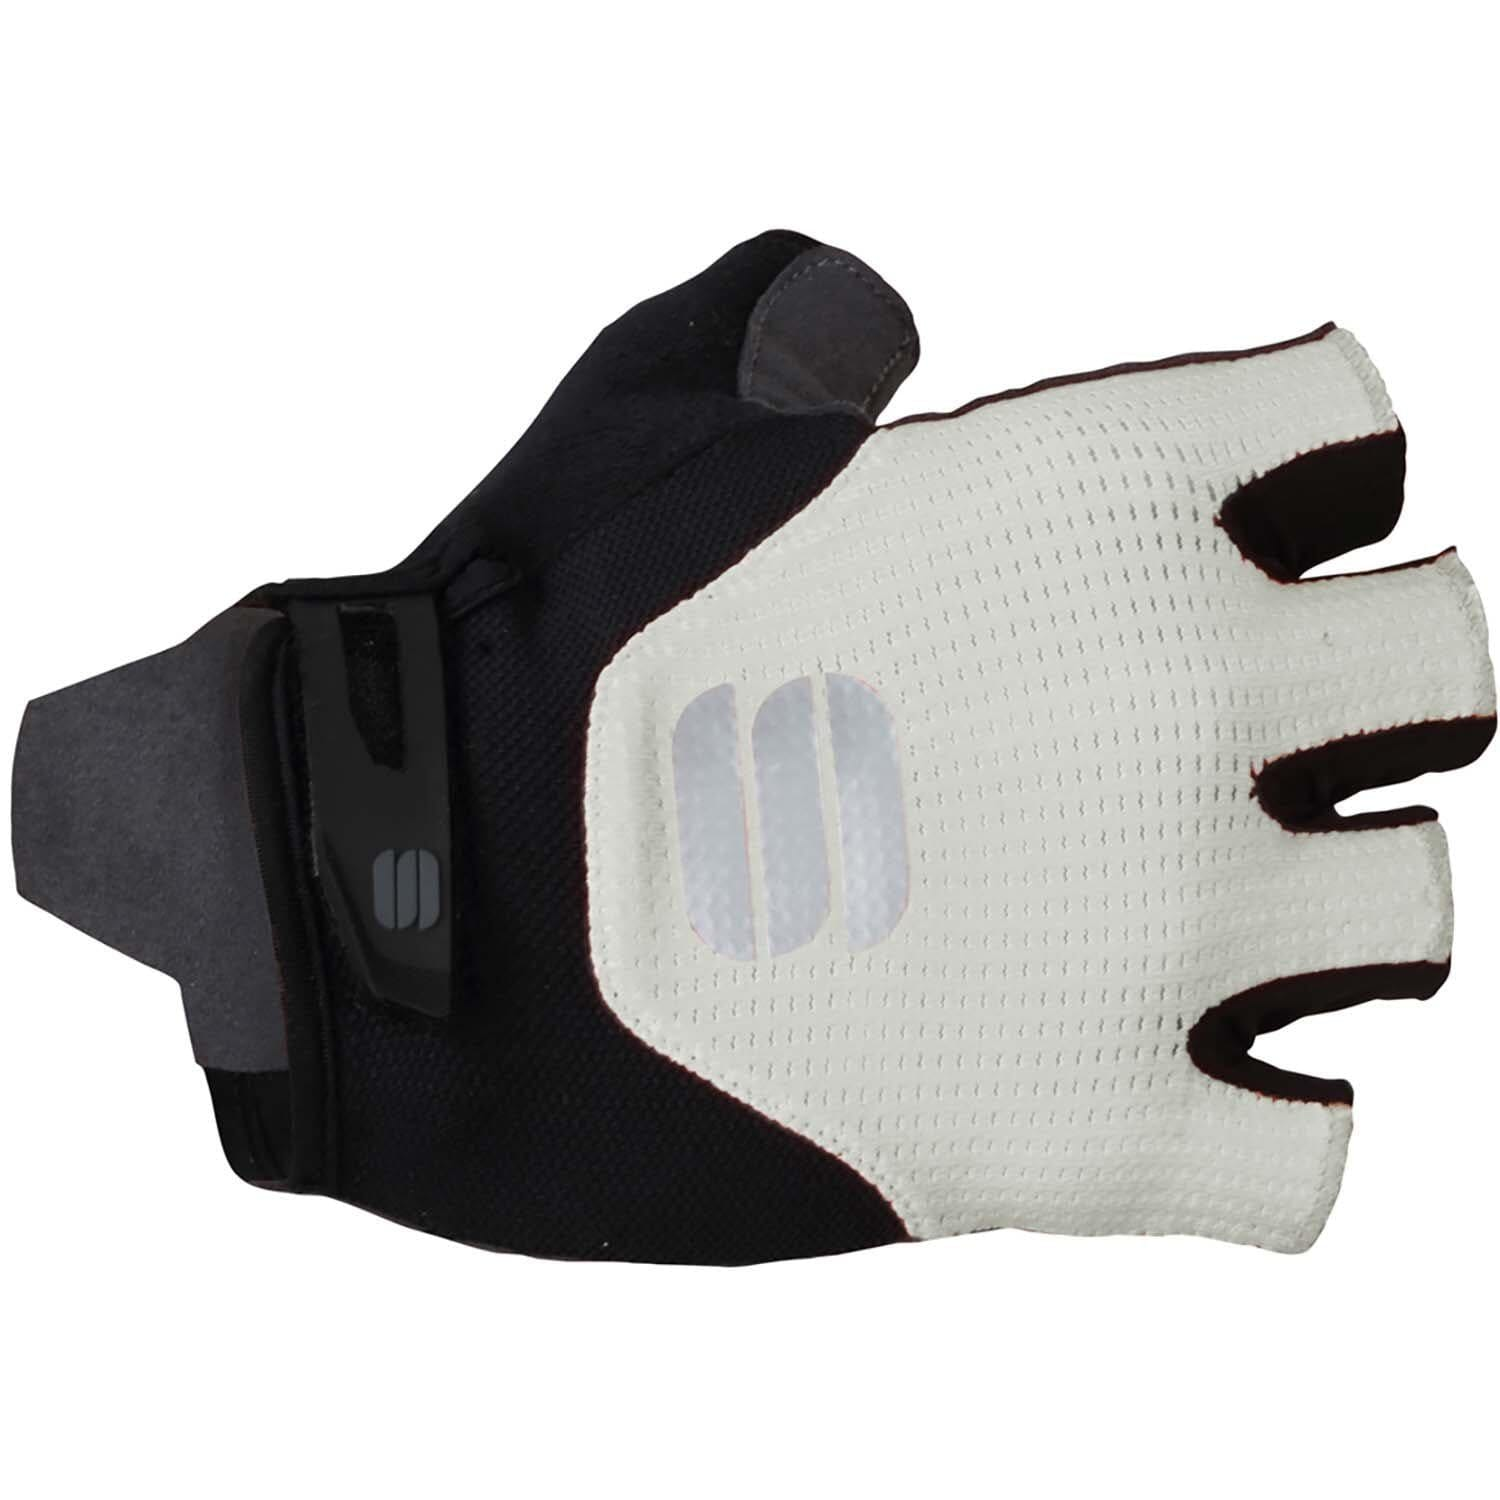 Sportful-Sportful Neo Gloves-Black/White-XS-SF020531011-saddleback-elite-performance-cycling